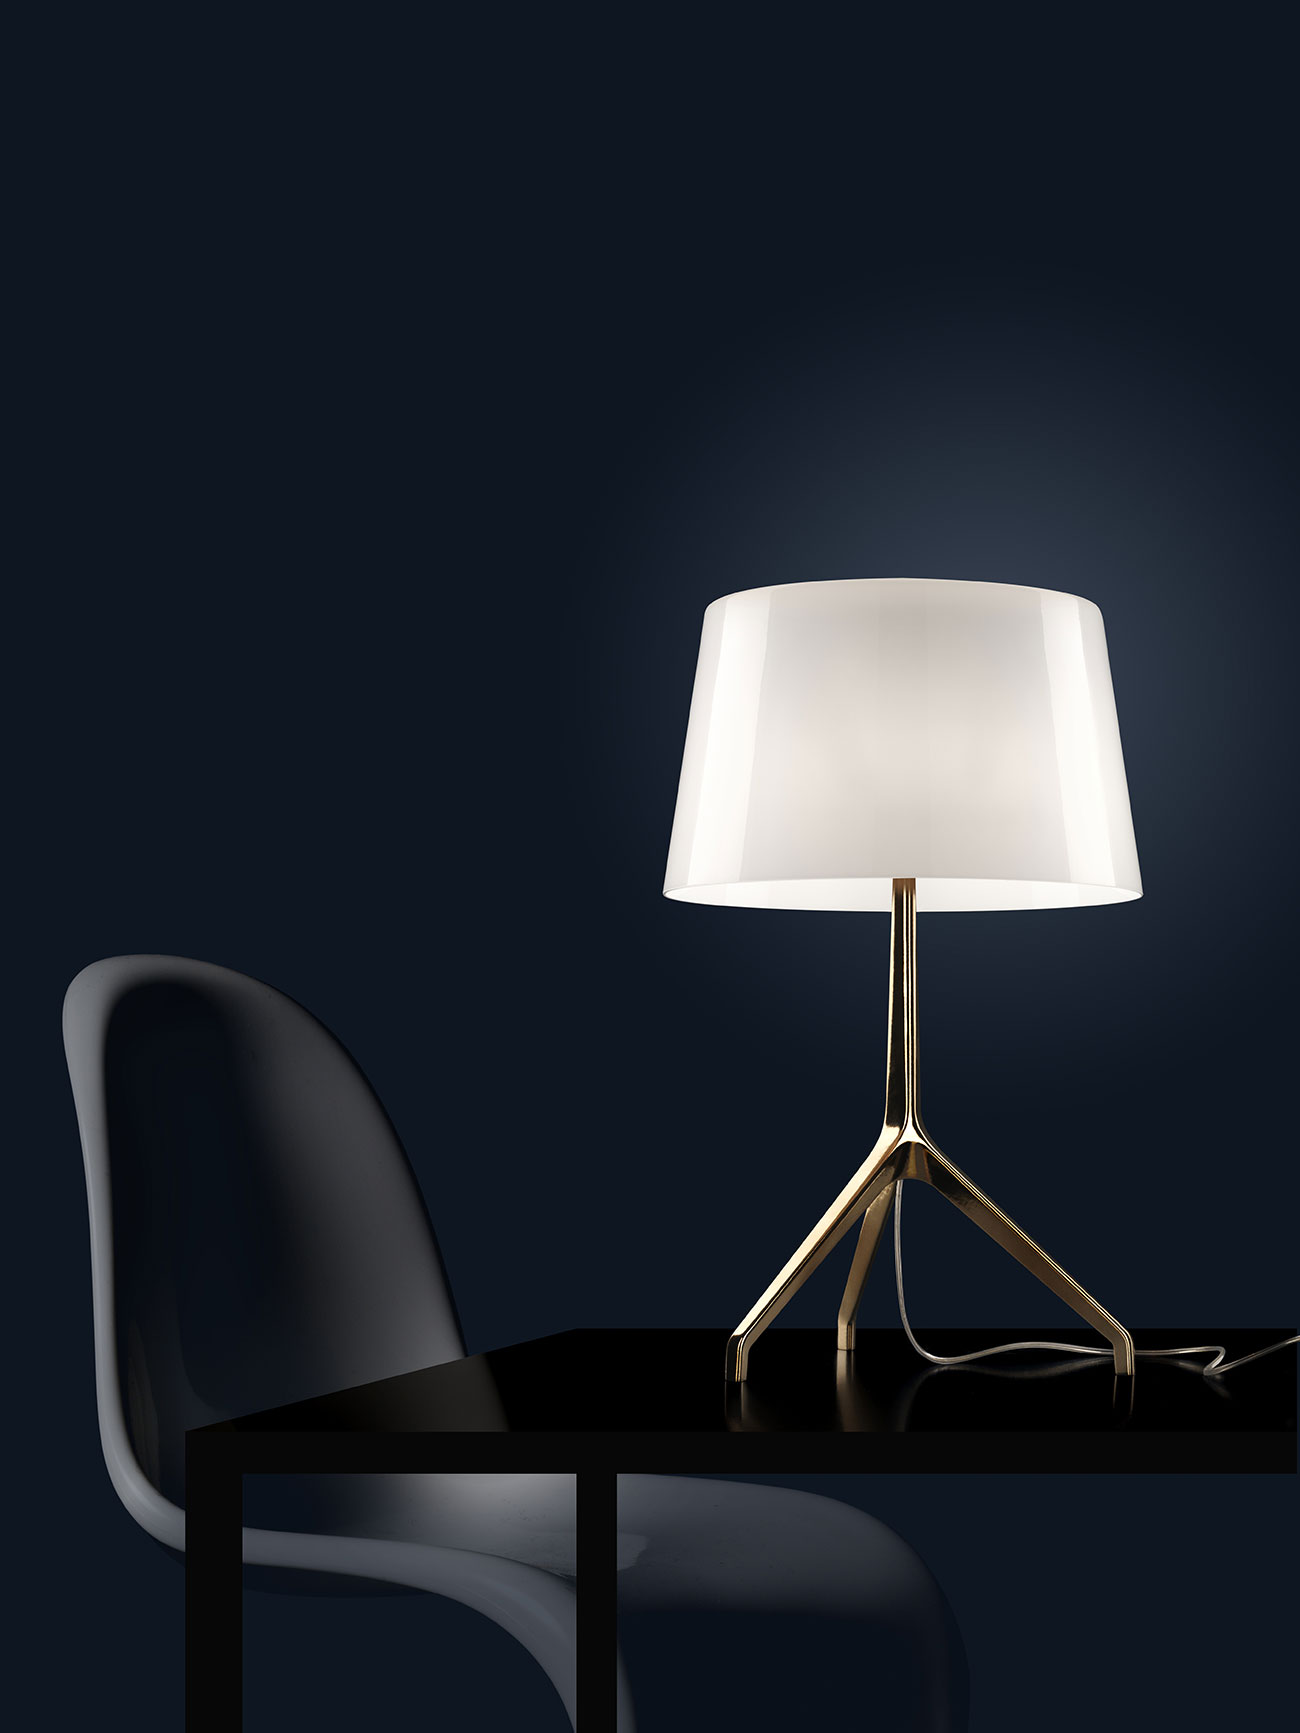 Foscarini Lumiere lamp